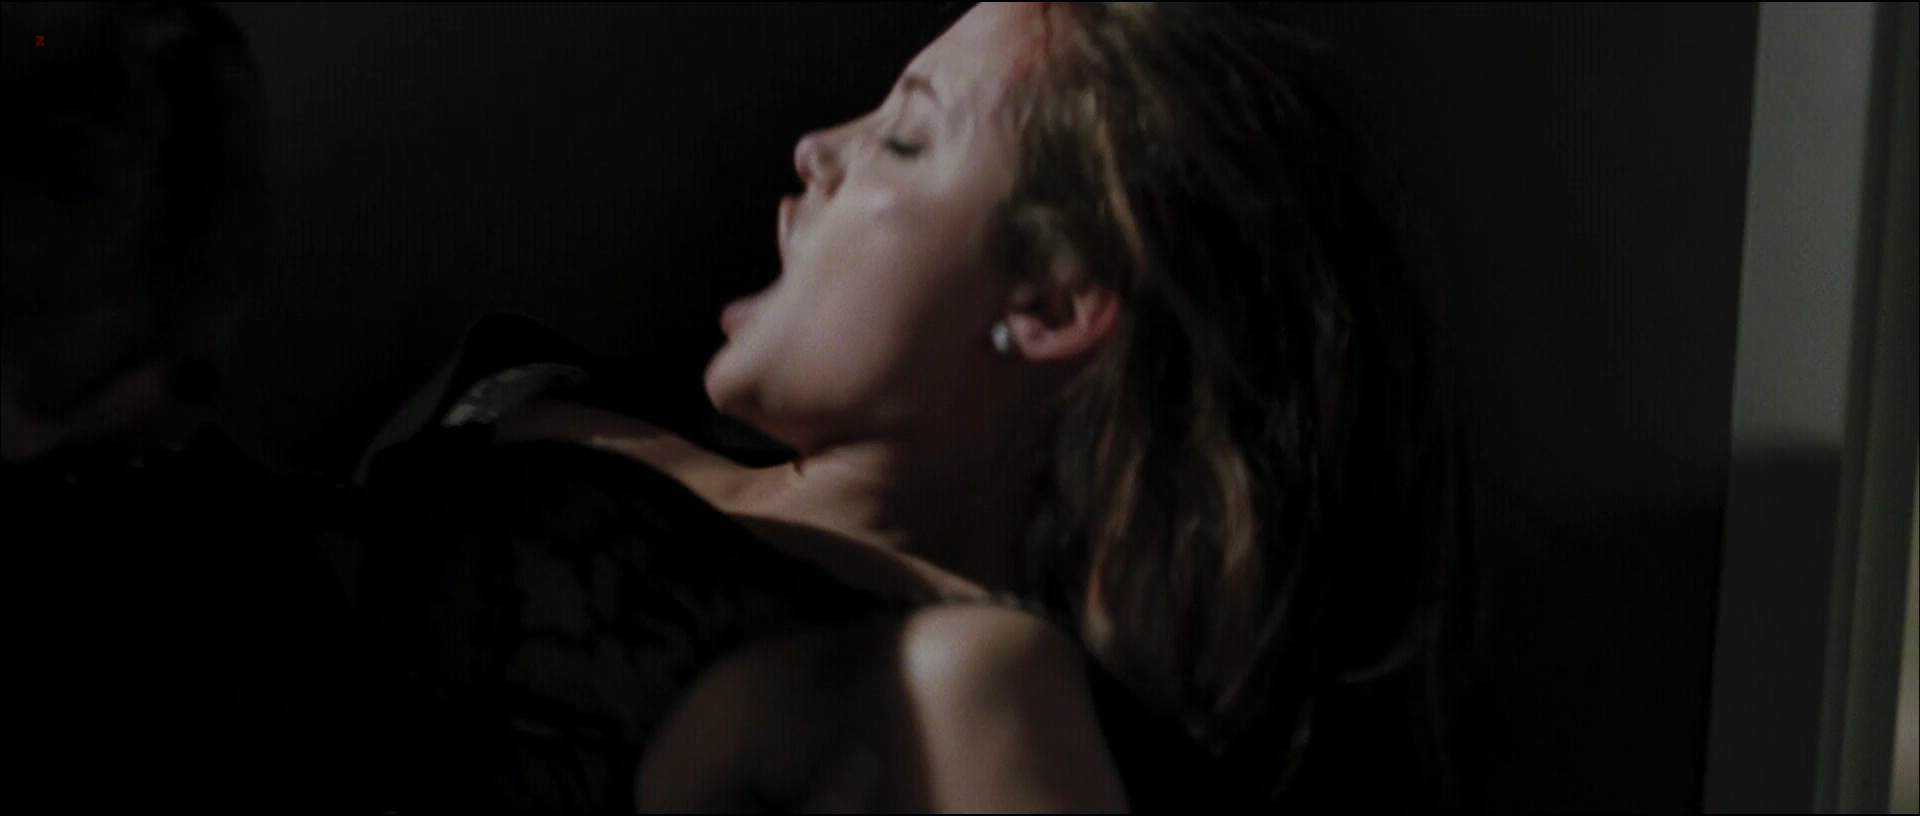 Angelina Jolie Not Nude But Very Hot And Sexy In - Mr  Mrs Smith 2005 -7775